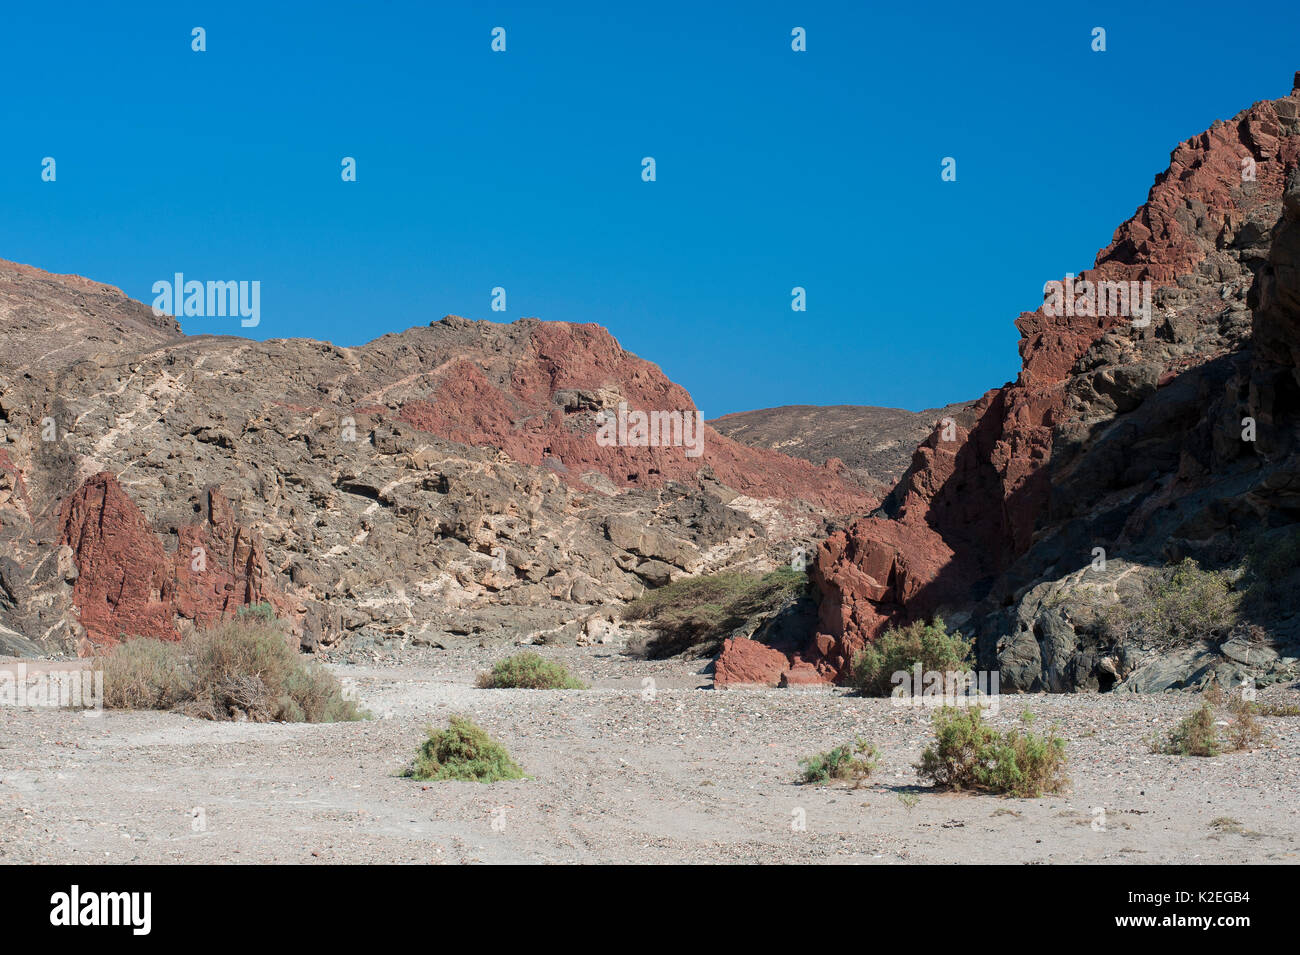 Rocky desert with differently coloured stone, Wadi Shat, Sultanate of Oman, February. - Stock Image